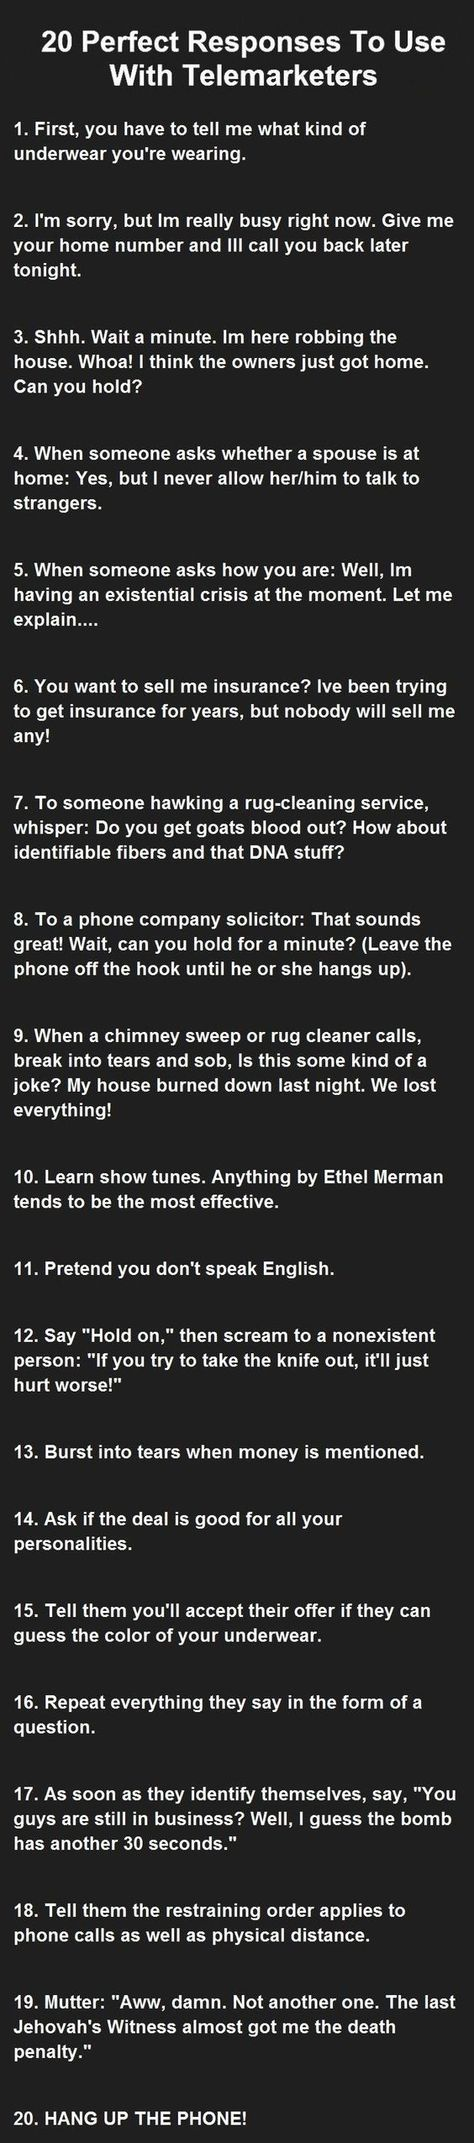 20 Perfect Responses To Use With Telemarketers. funny jokes story lol funny quote funny quotes funny sayings joke hilarious humor prank stories funny jokes pranks: